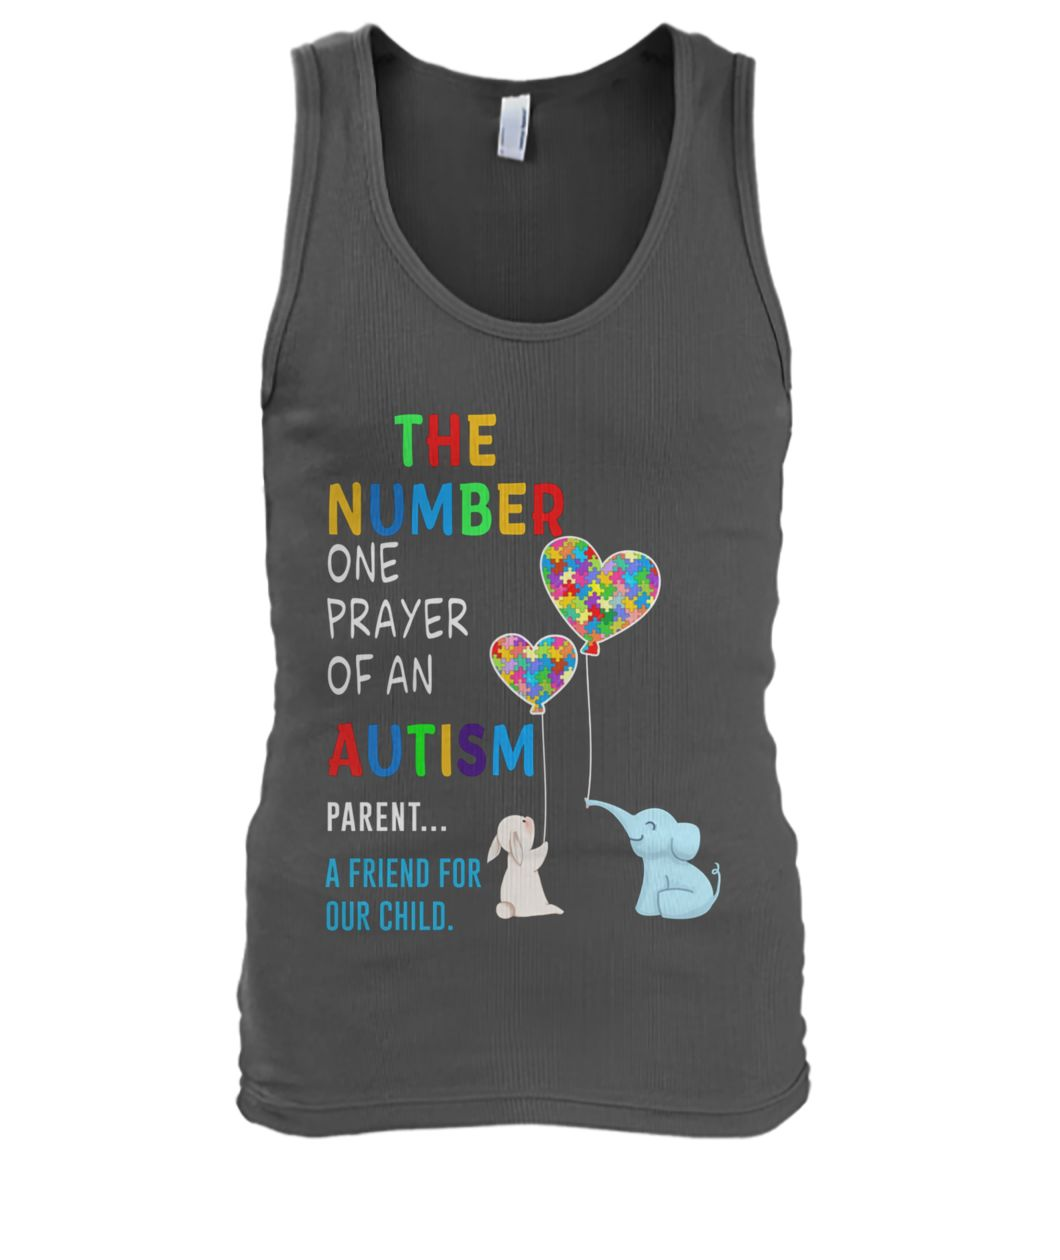 The number one prayer of an autism parent a friend for our child men's tank top